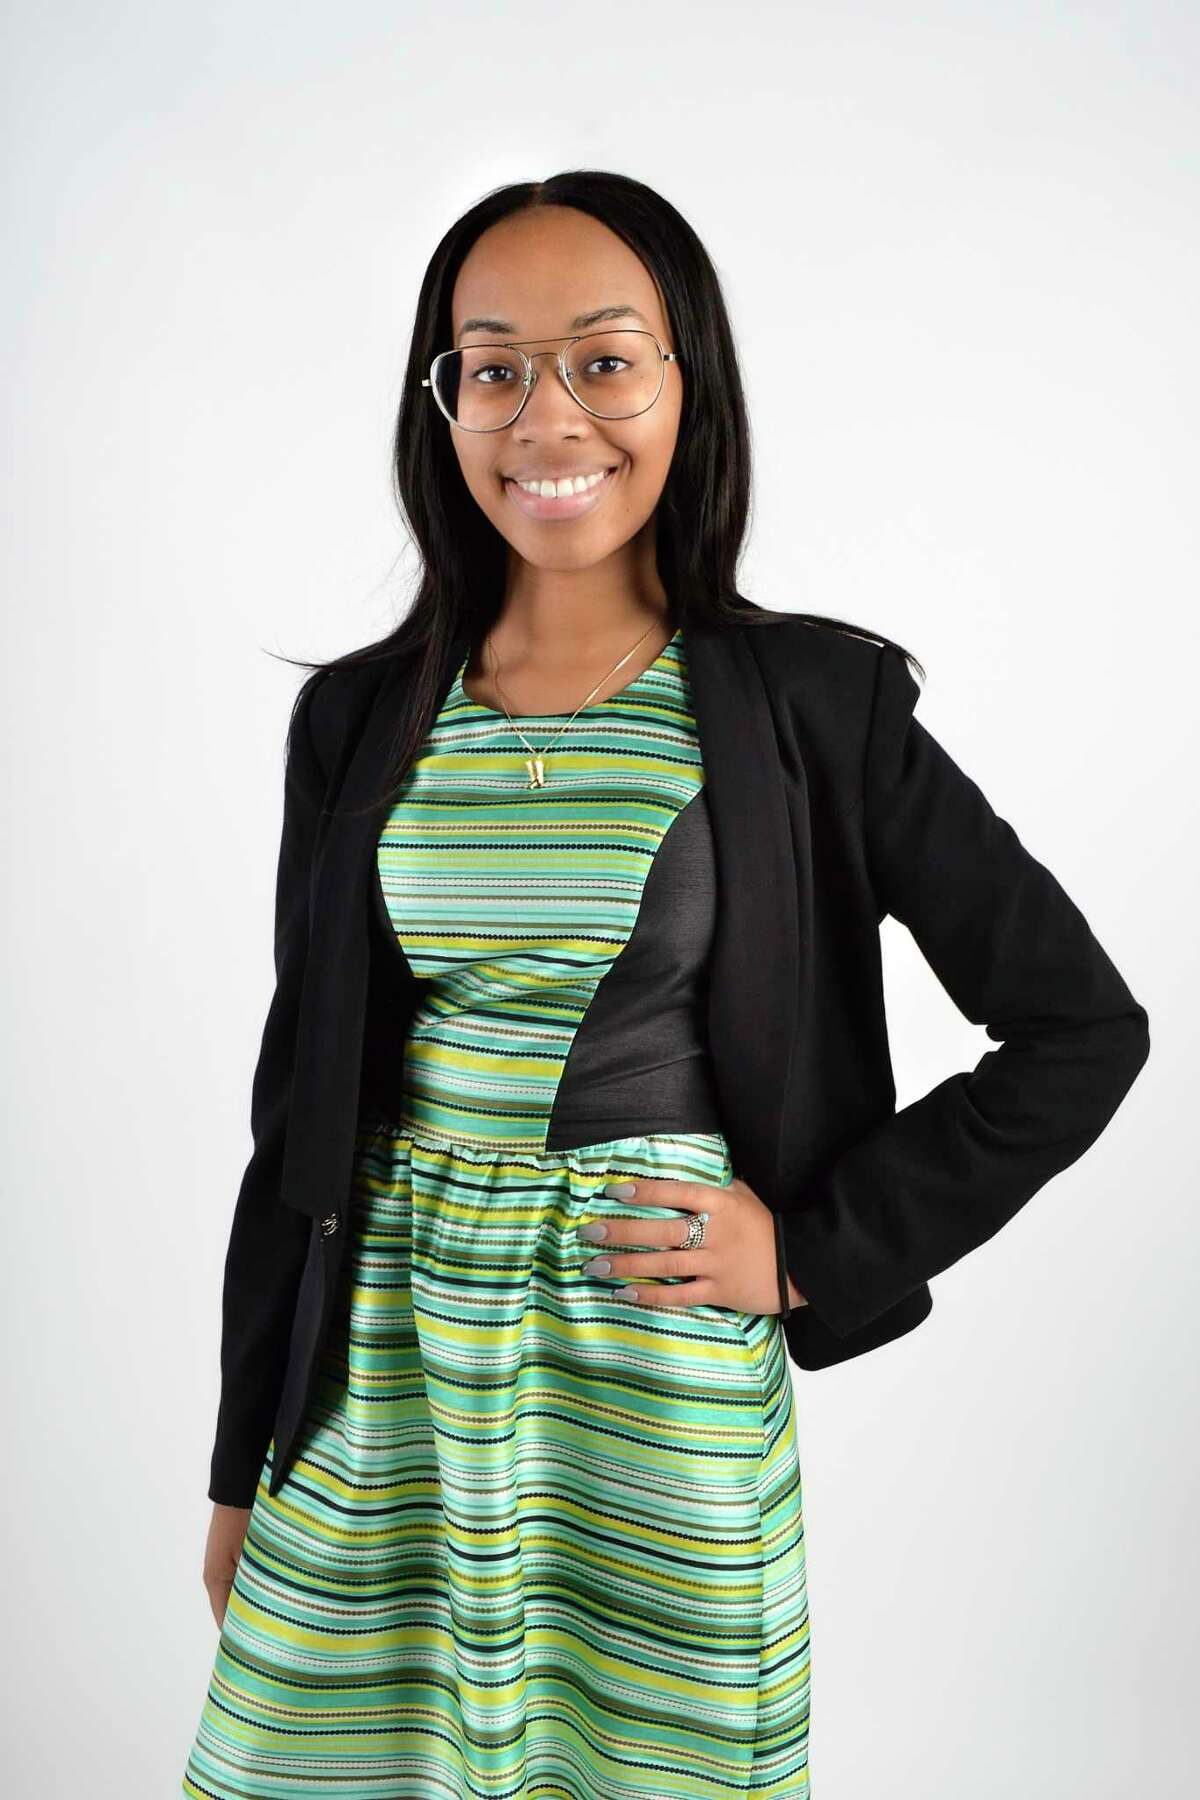 Nyra Alexander, a member of the first 20 Under 20 class ?- a joint effort between Women@Work and the Girl Scouts of NENY, at the Times Union in Albany on Monday, August 7, 2017. (Photo by Colleen Ingerto / Times Union)